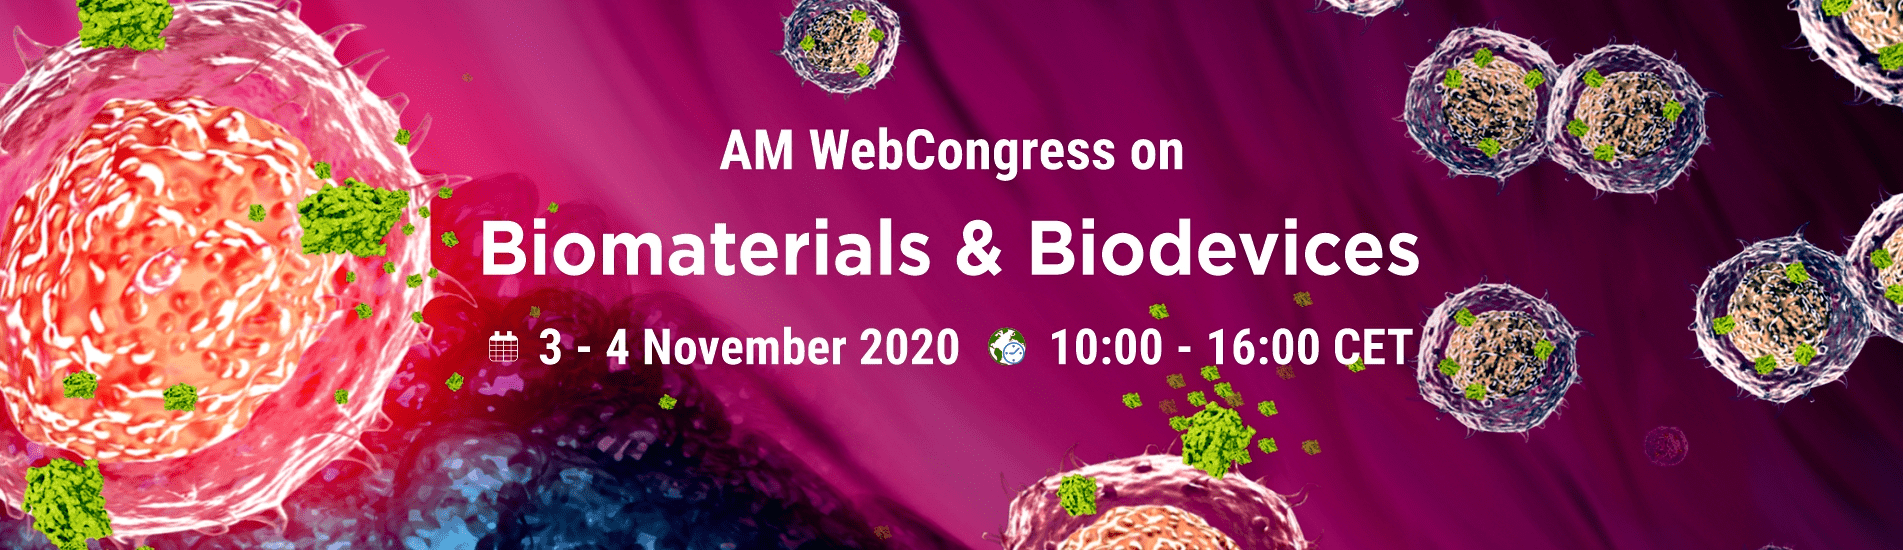 WebCongress on Biomaterials and Biodevices | AMWeb | IAAM